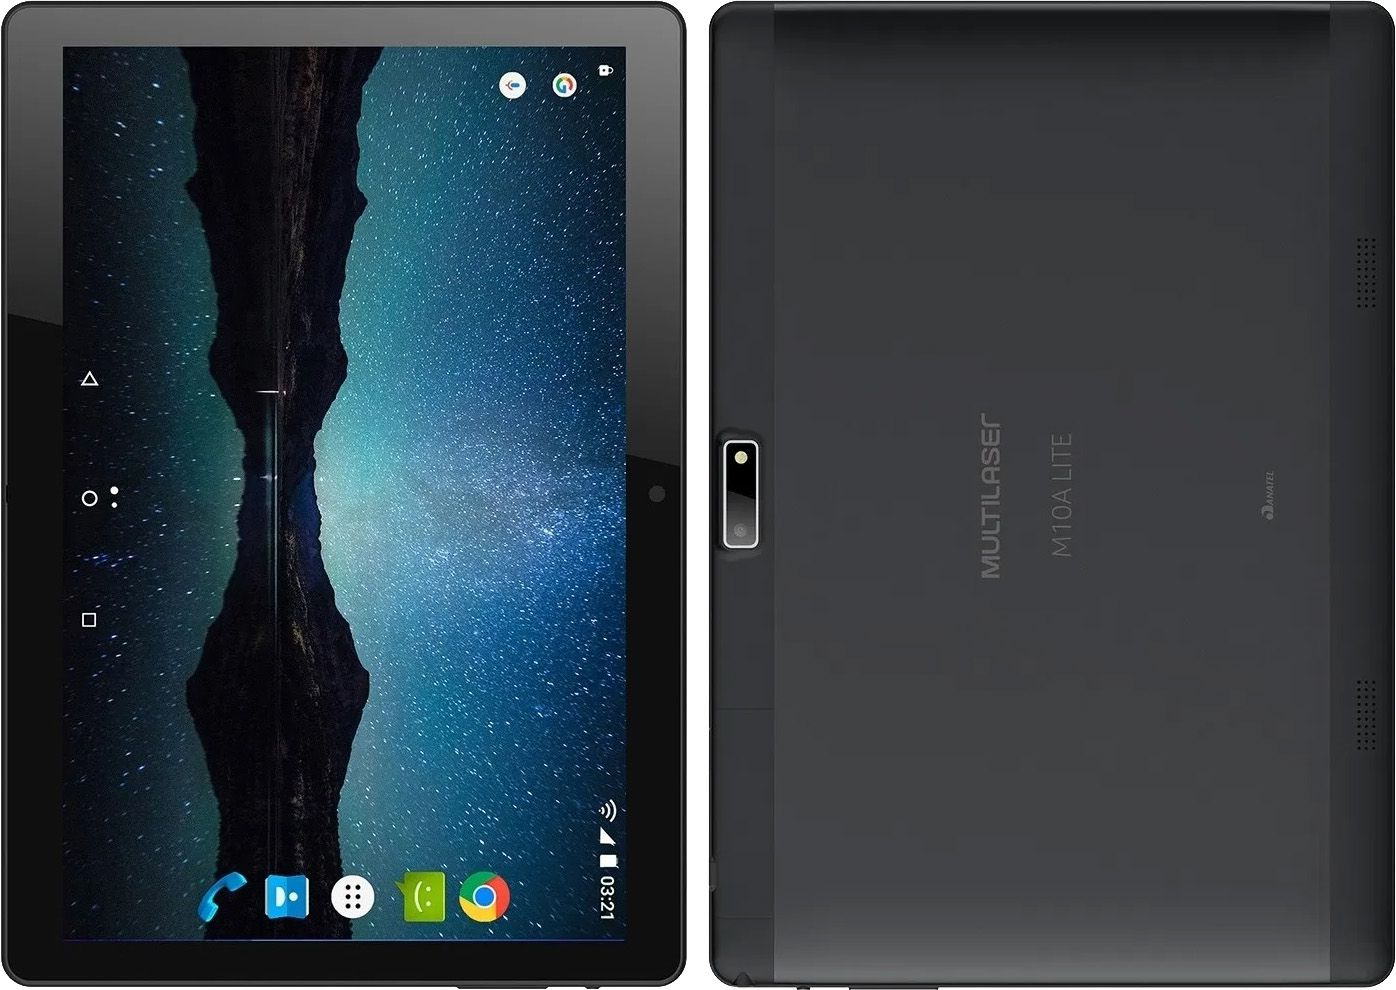 "Tablet Multilaser M10A Lite 3G 8GB 1GB RAM Tela de 10"" Quad Core Câmera de 5MP - Preto"